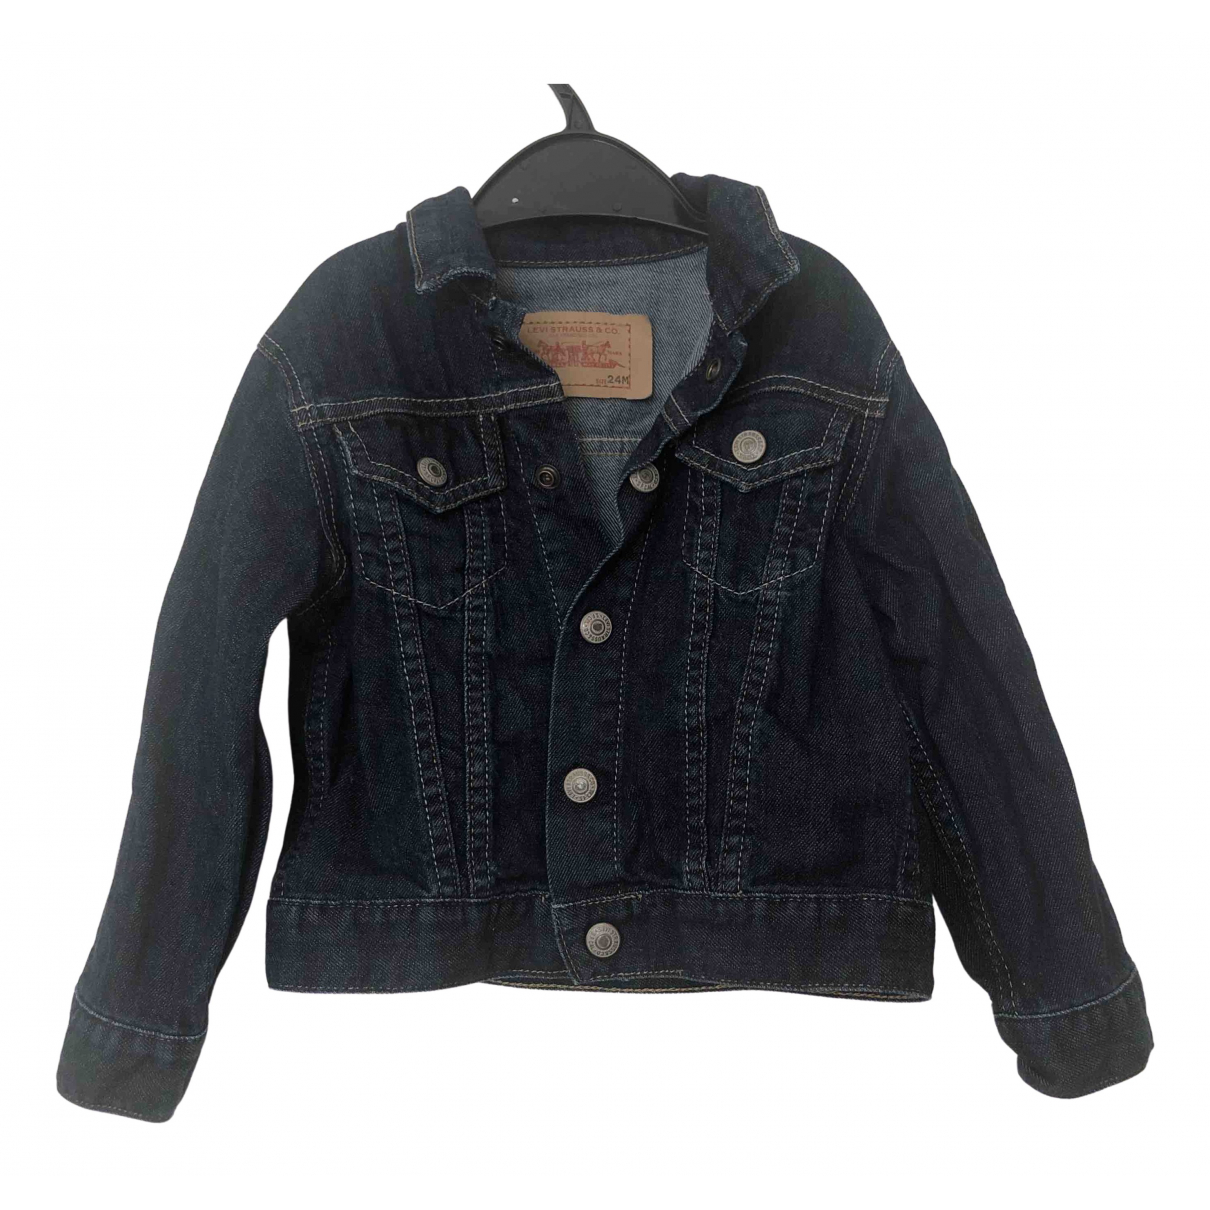 Levi's \N Navy Denim - Jeans jacket & coat for Kids 2 years - up to 86cm FR